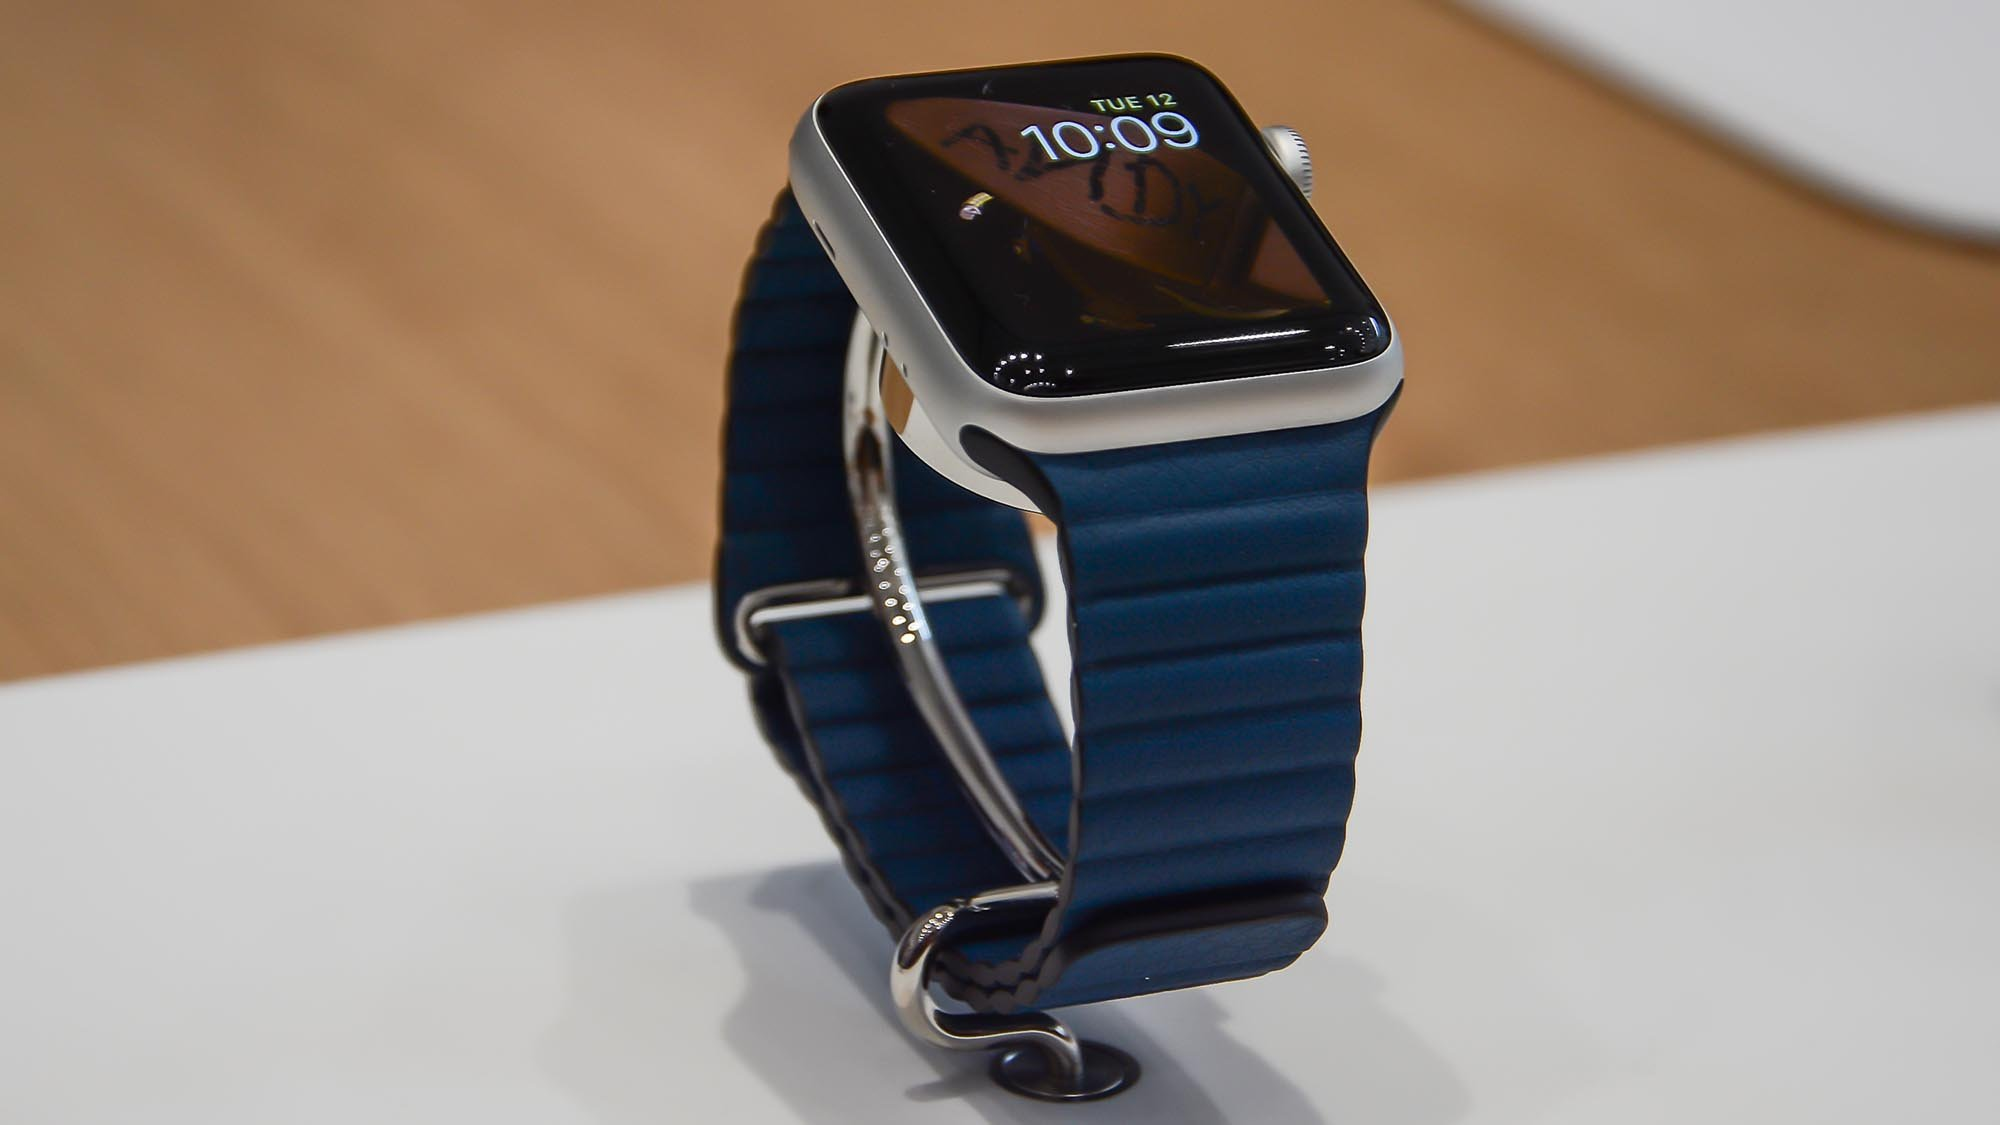 3rd party Apple Watch Series 3